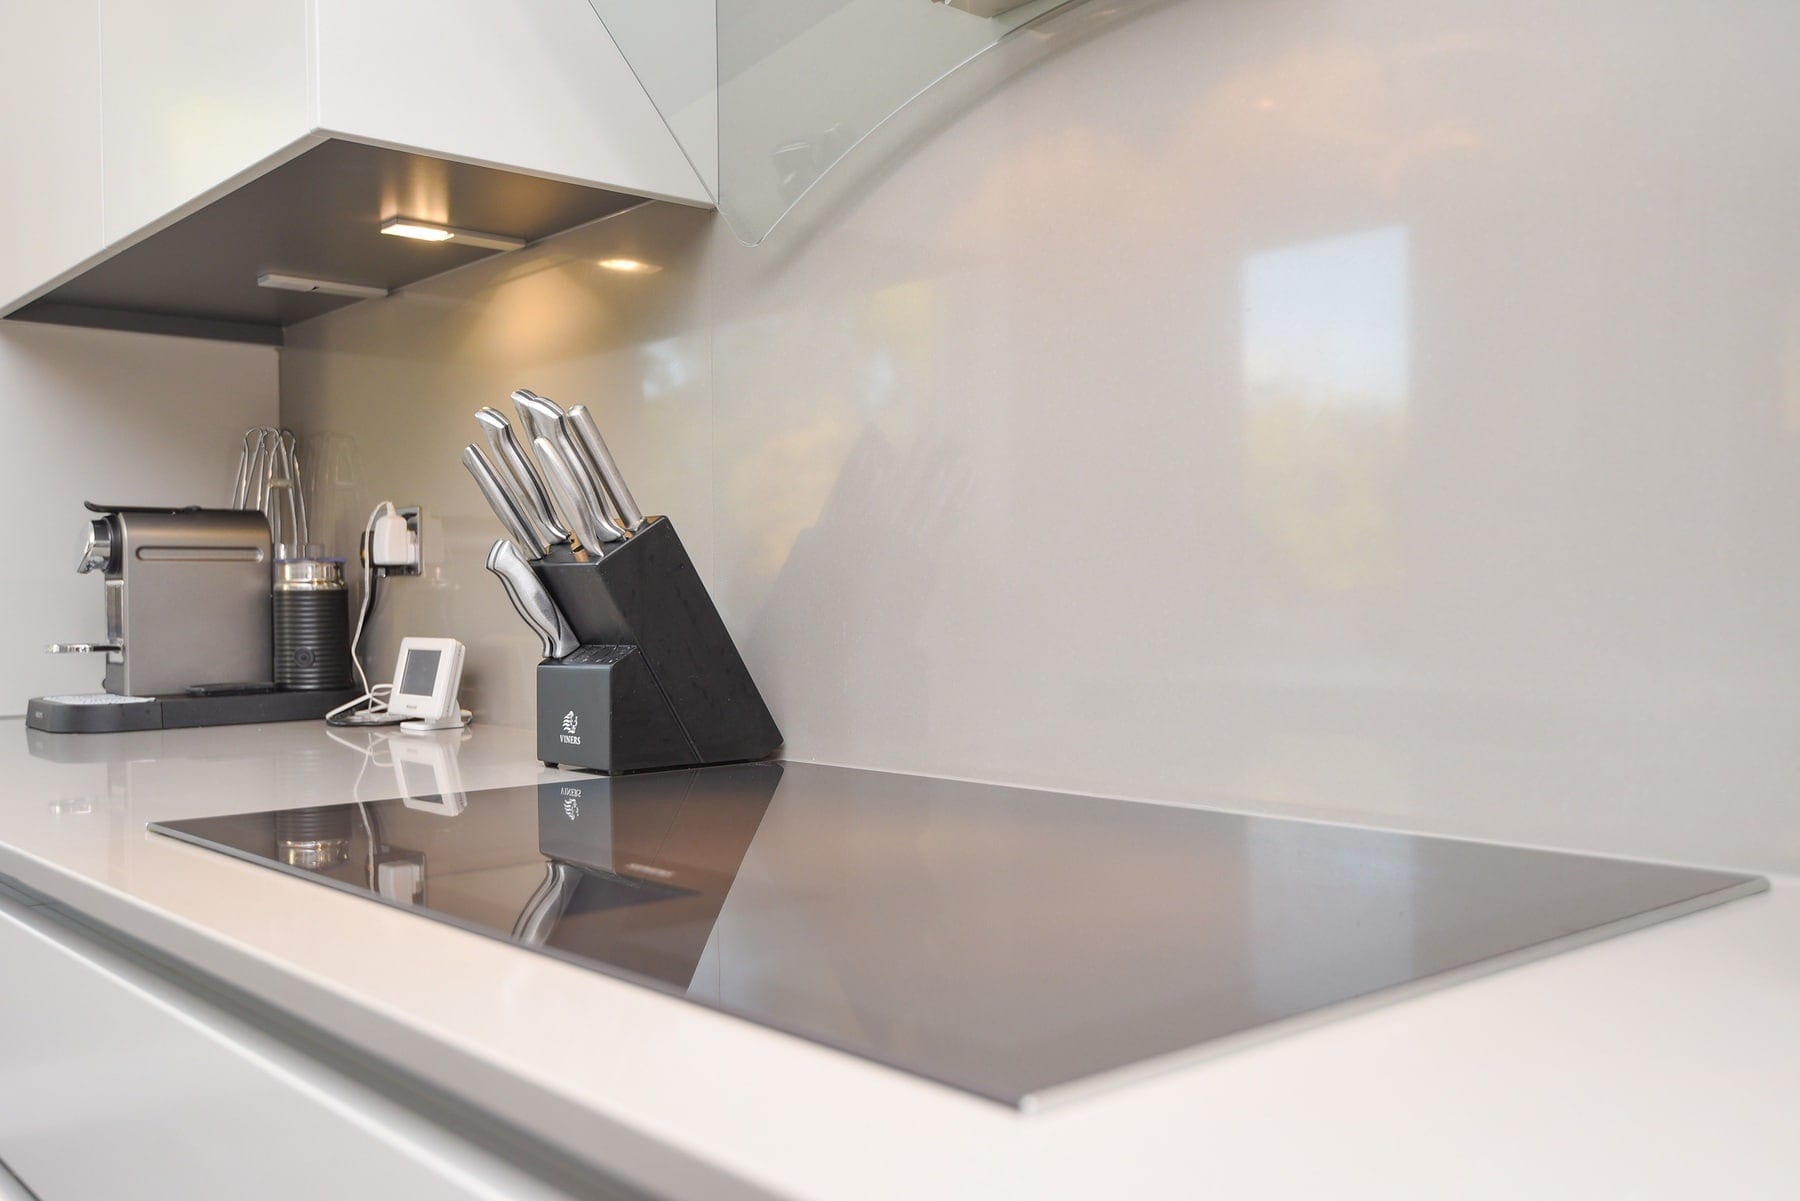 Totteridge Kitchen 5 | Such Designs, London